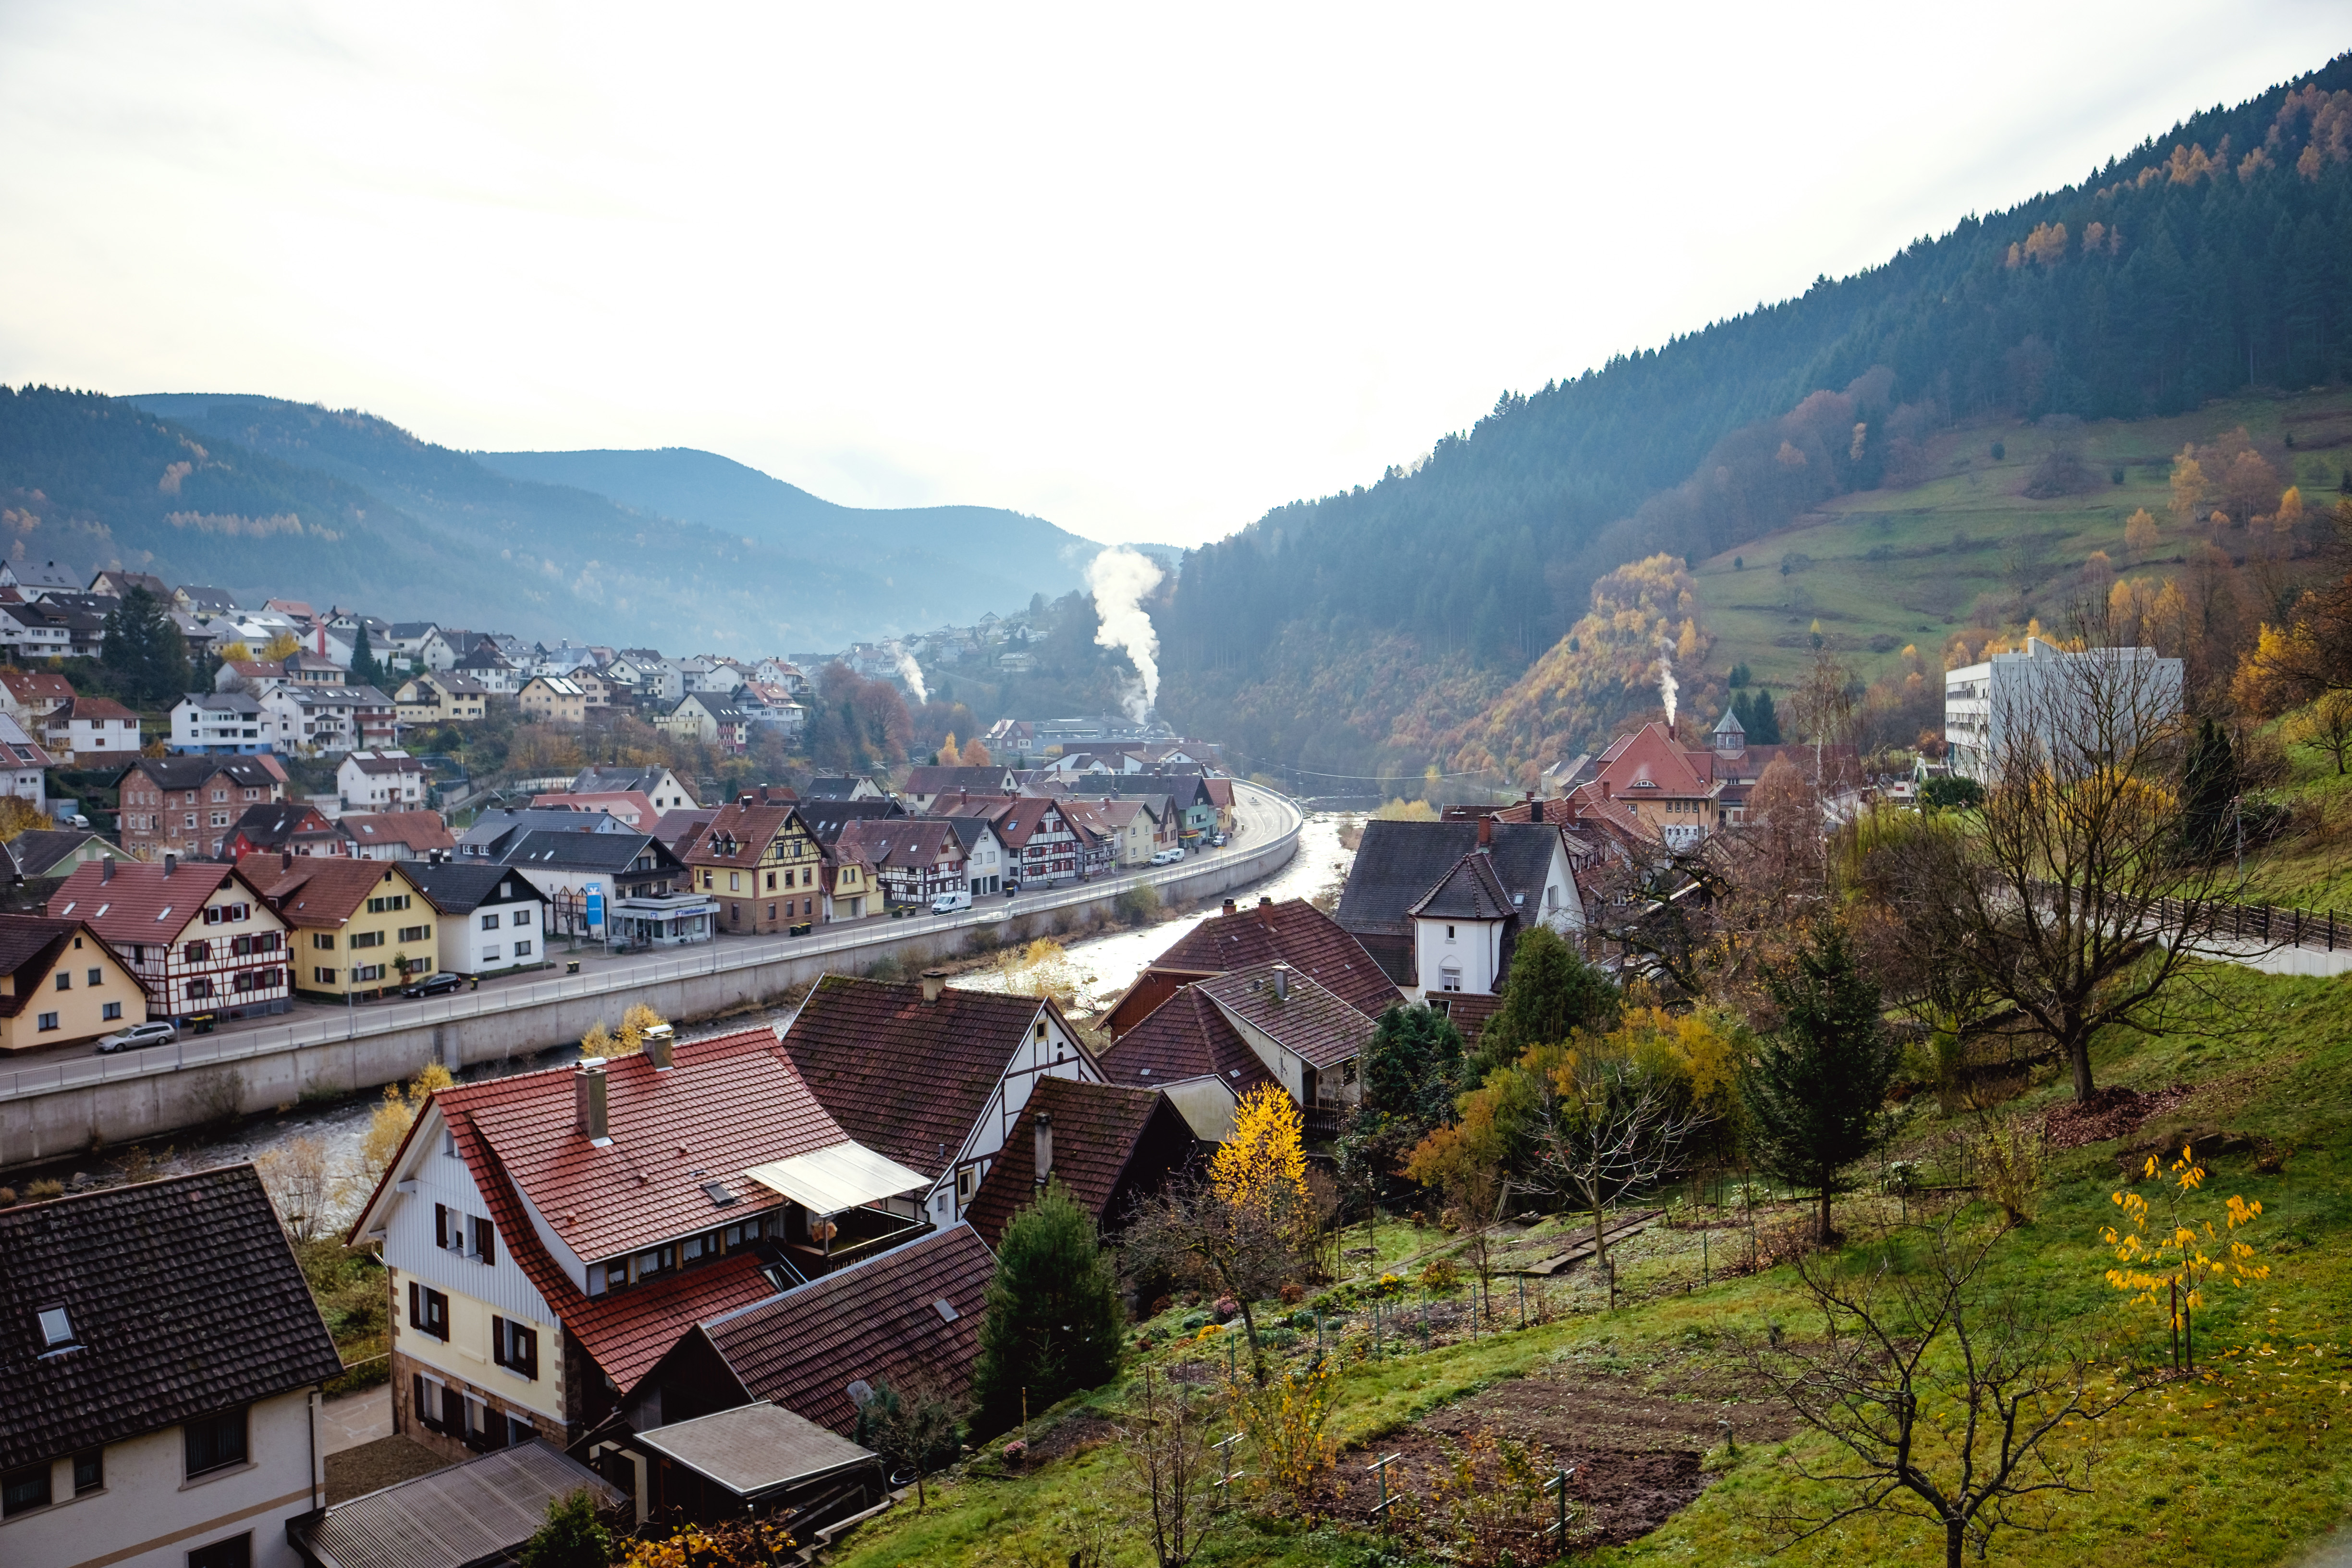 A hilltop view of Weisenbach, Germany.